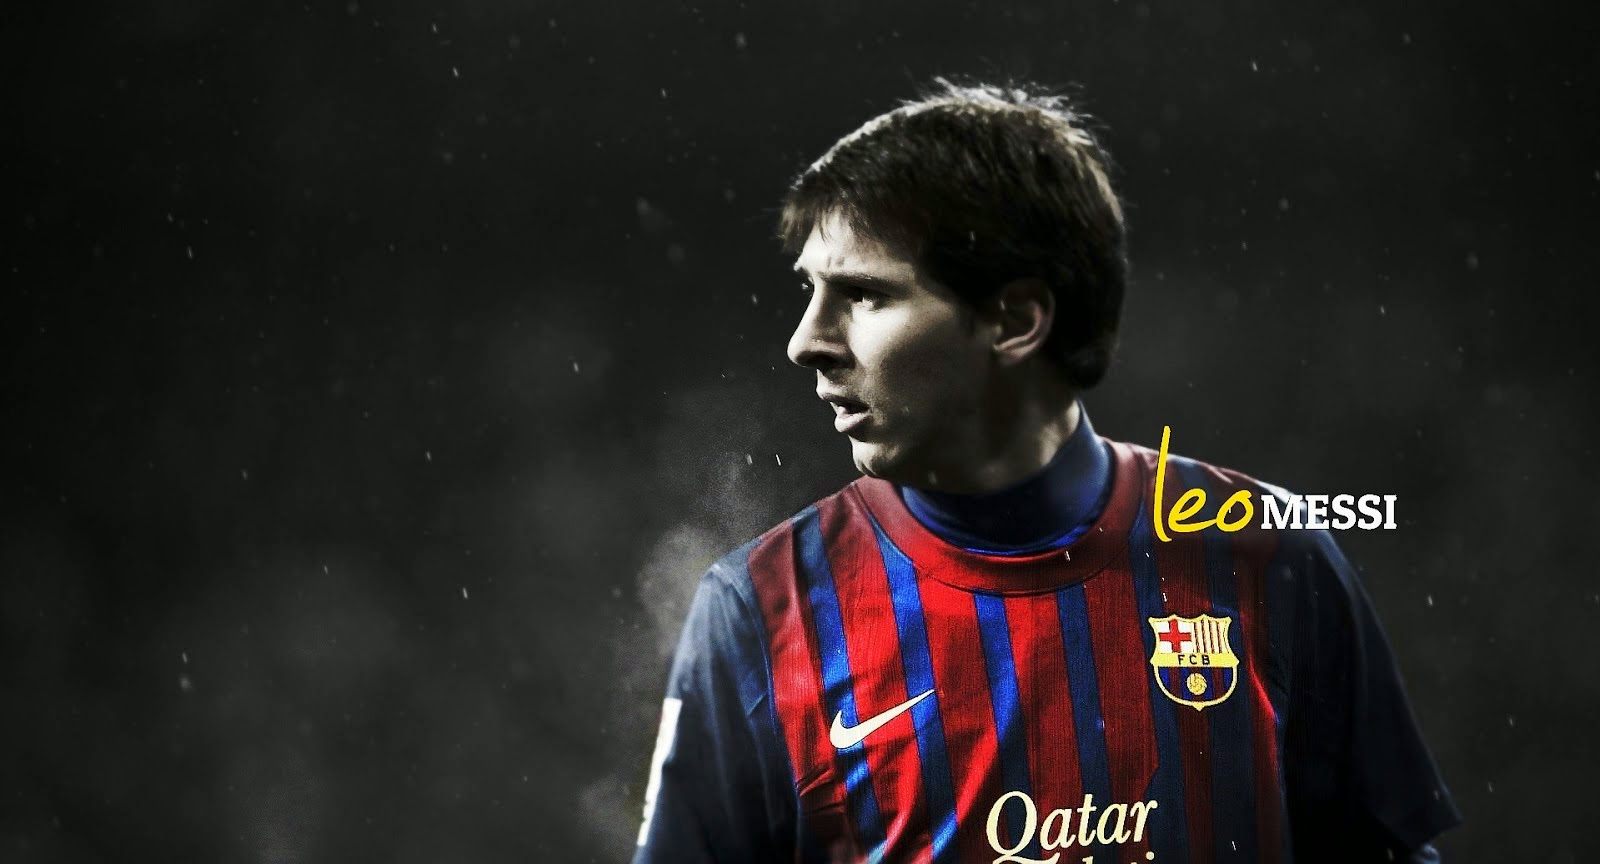 messi wallpapers lionel messi wallpapers download lionel messi 1600x864